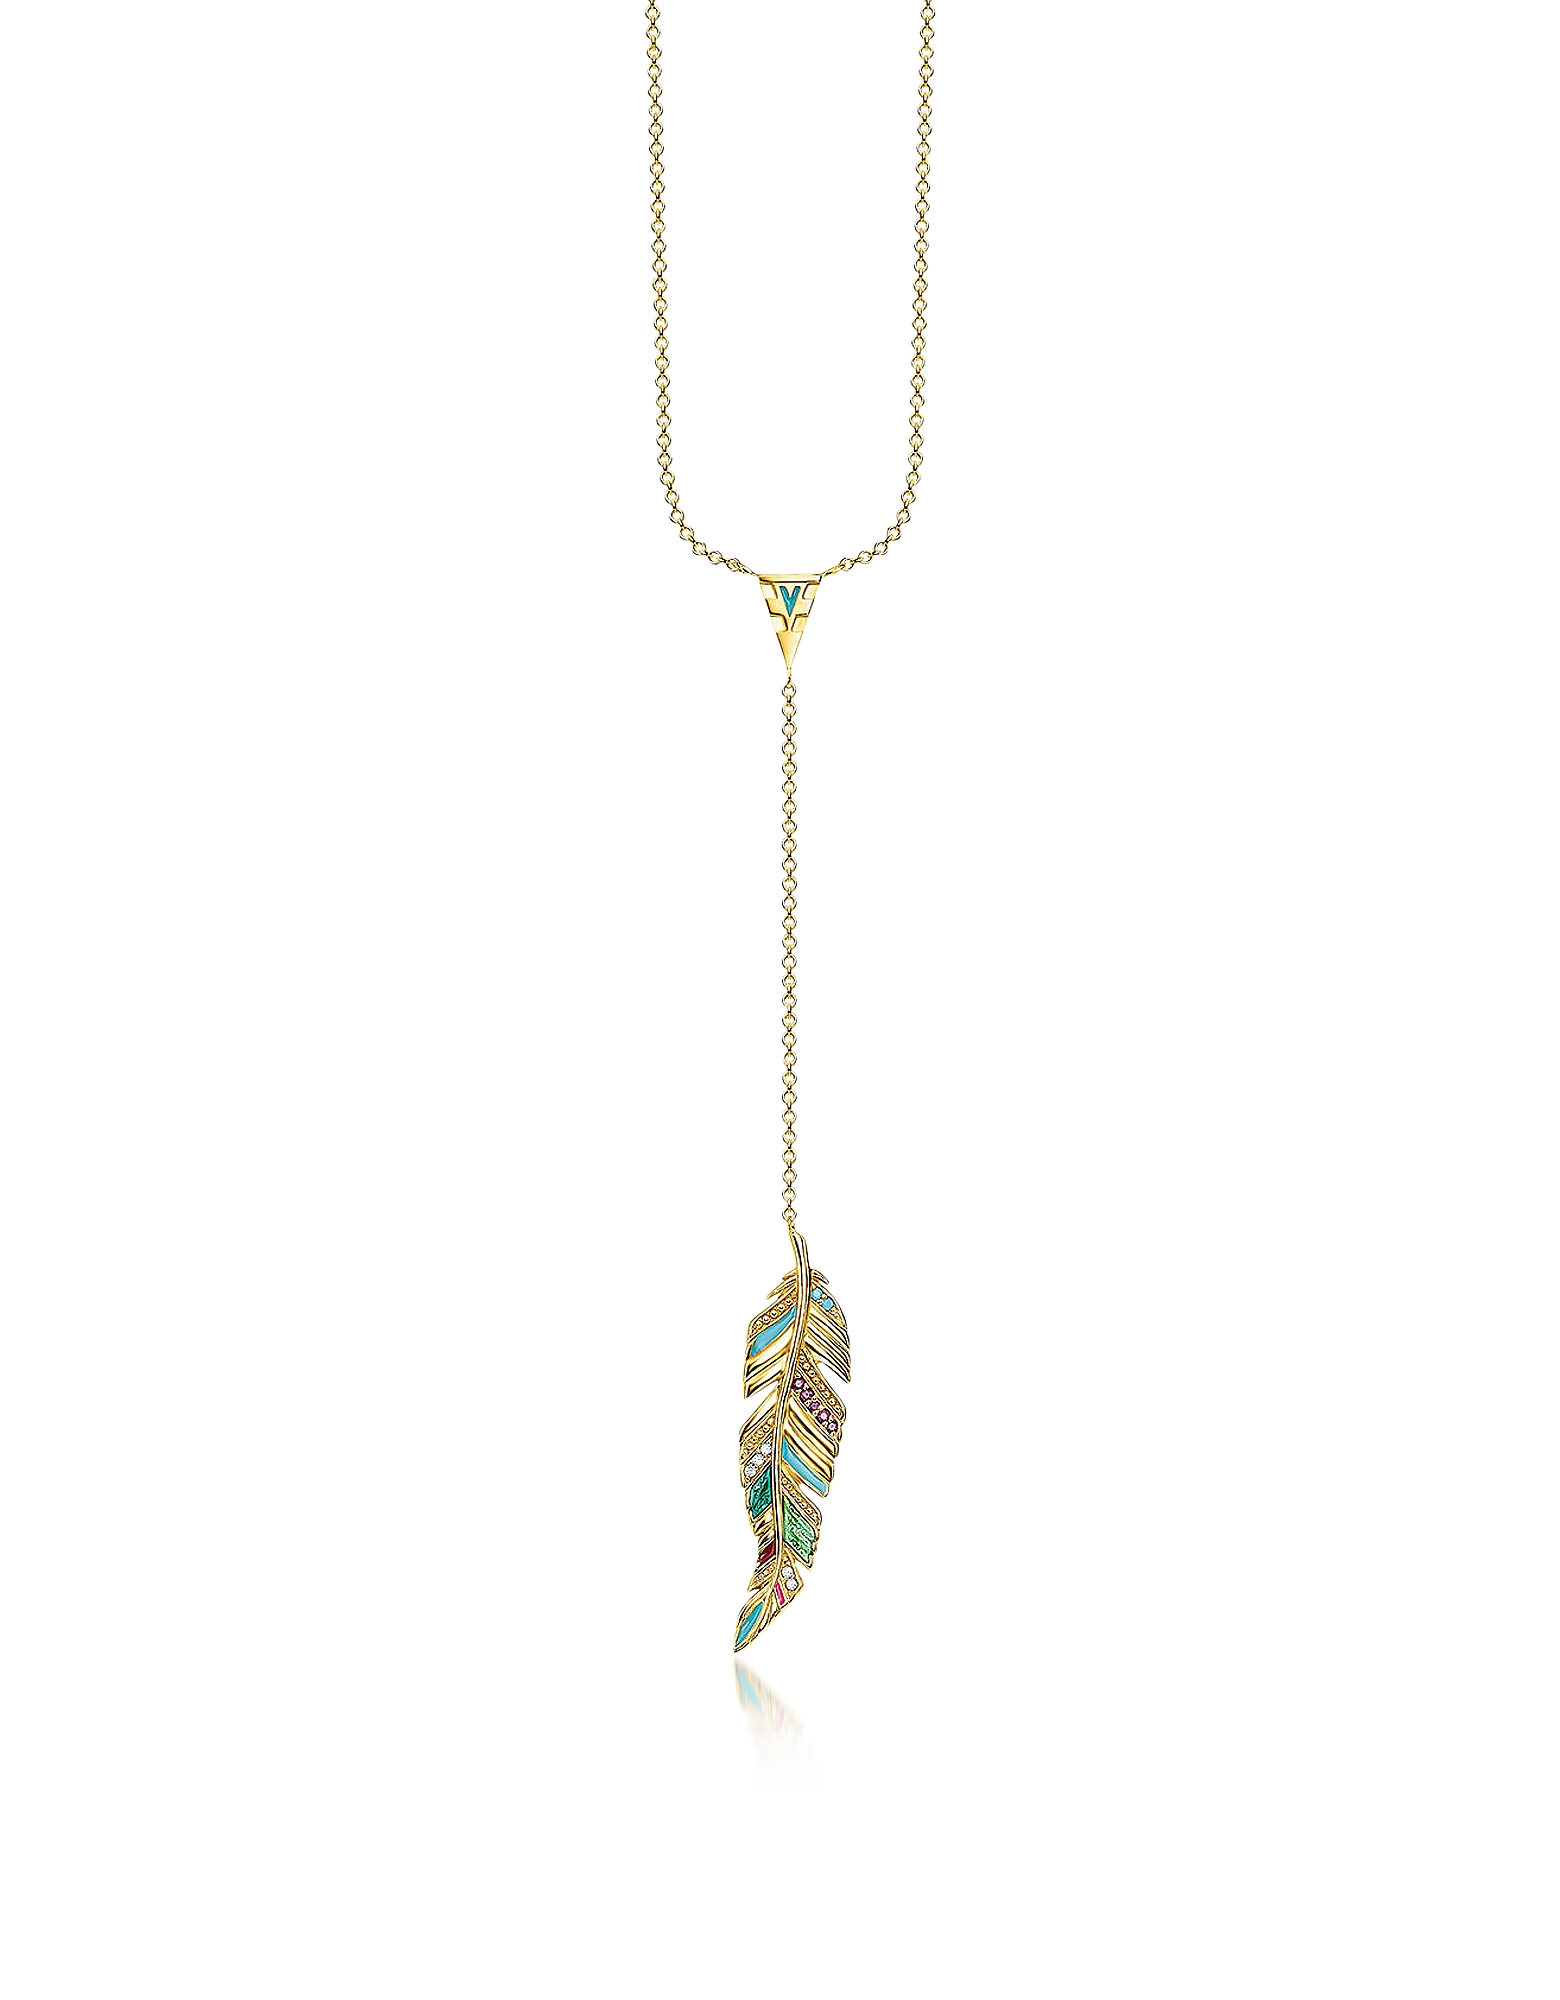 Thomas Sabo Necklaces, Gold Plated Sterling Silver, Enamel and Glass-ceramic Stones Feather Necklace